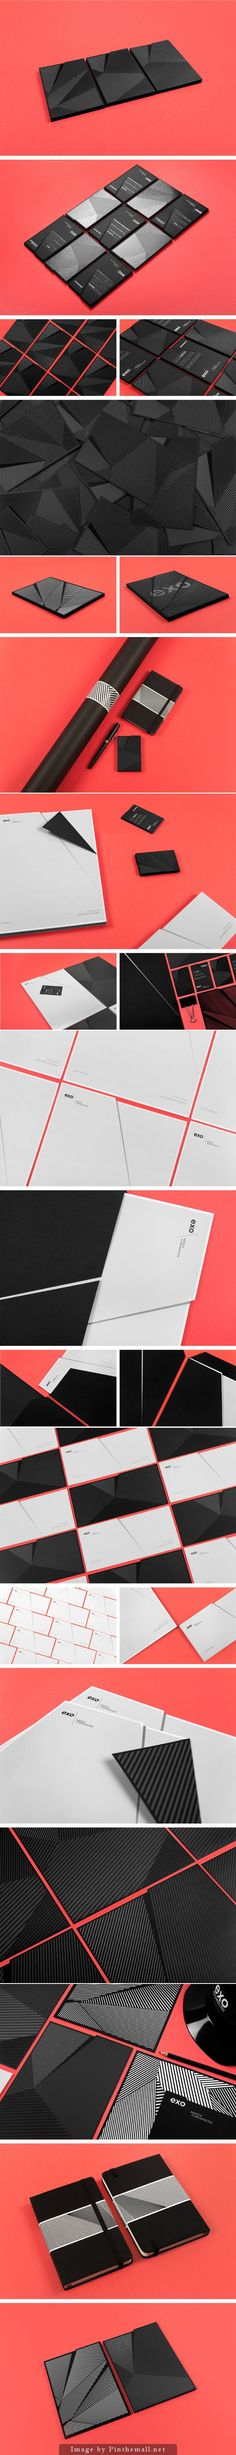 Branding by Murmure for EXO, a French Architectural Agency